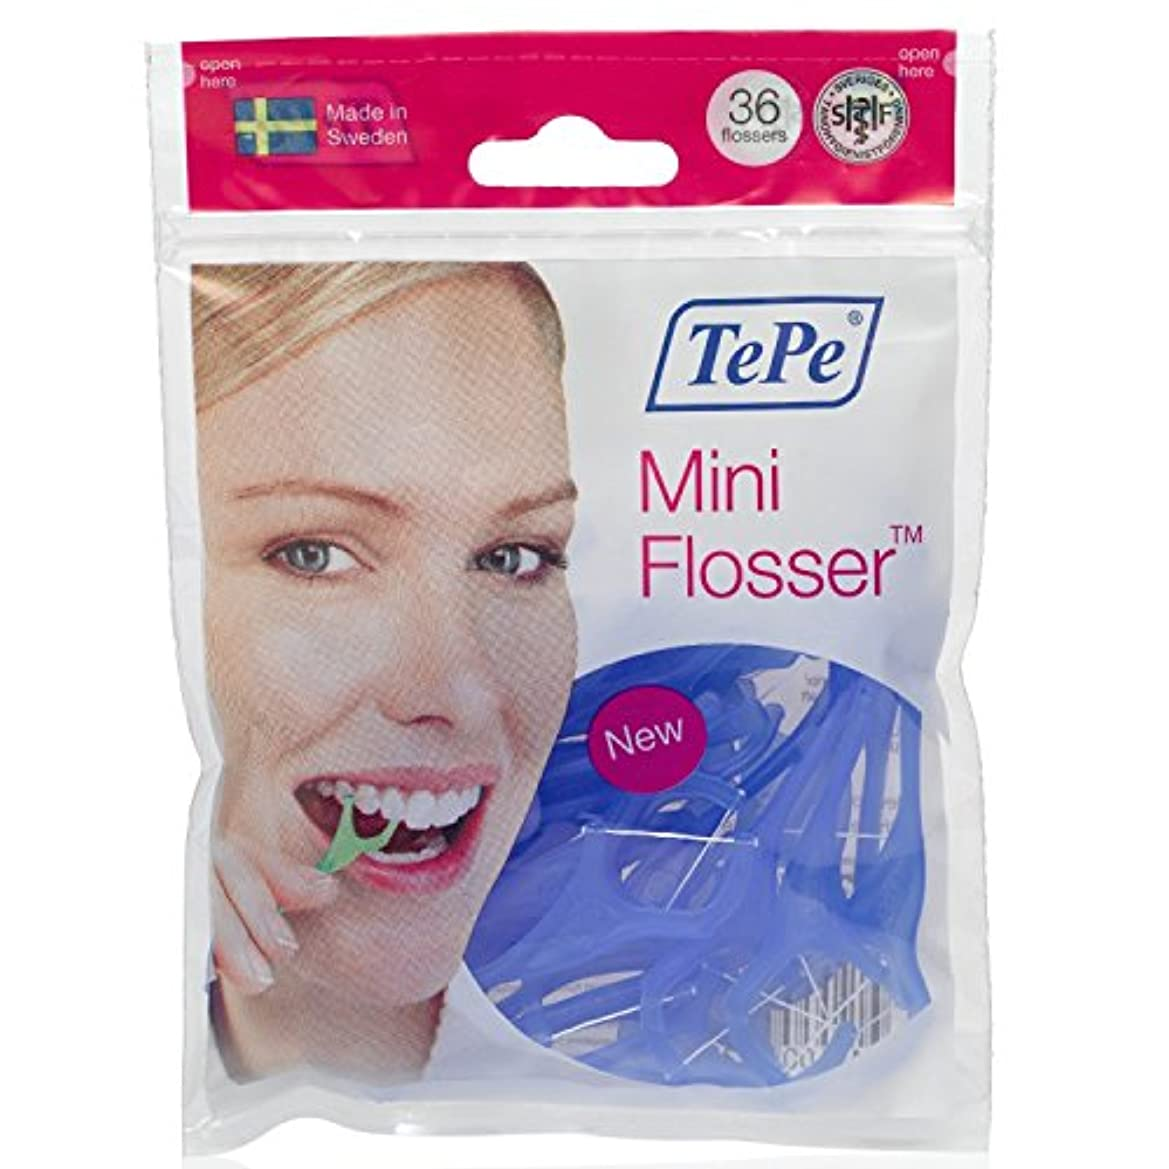 死ぬ請求書麻痺させる5Pack TePe Mini Flosser Dental Floss Holder 5x 36 pieces by TePe